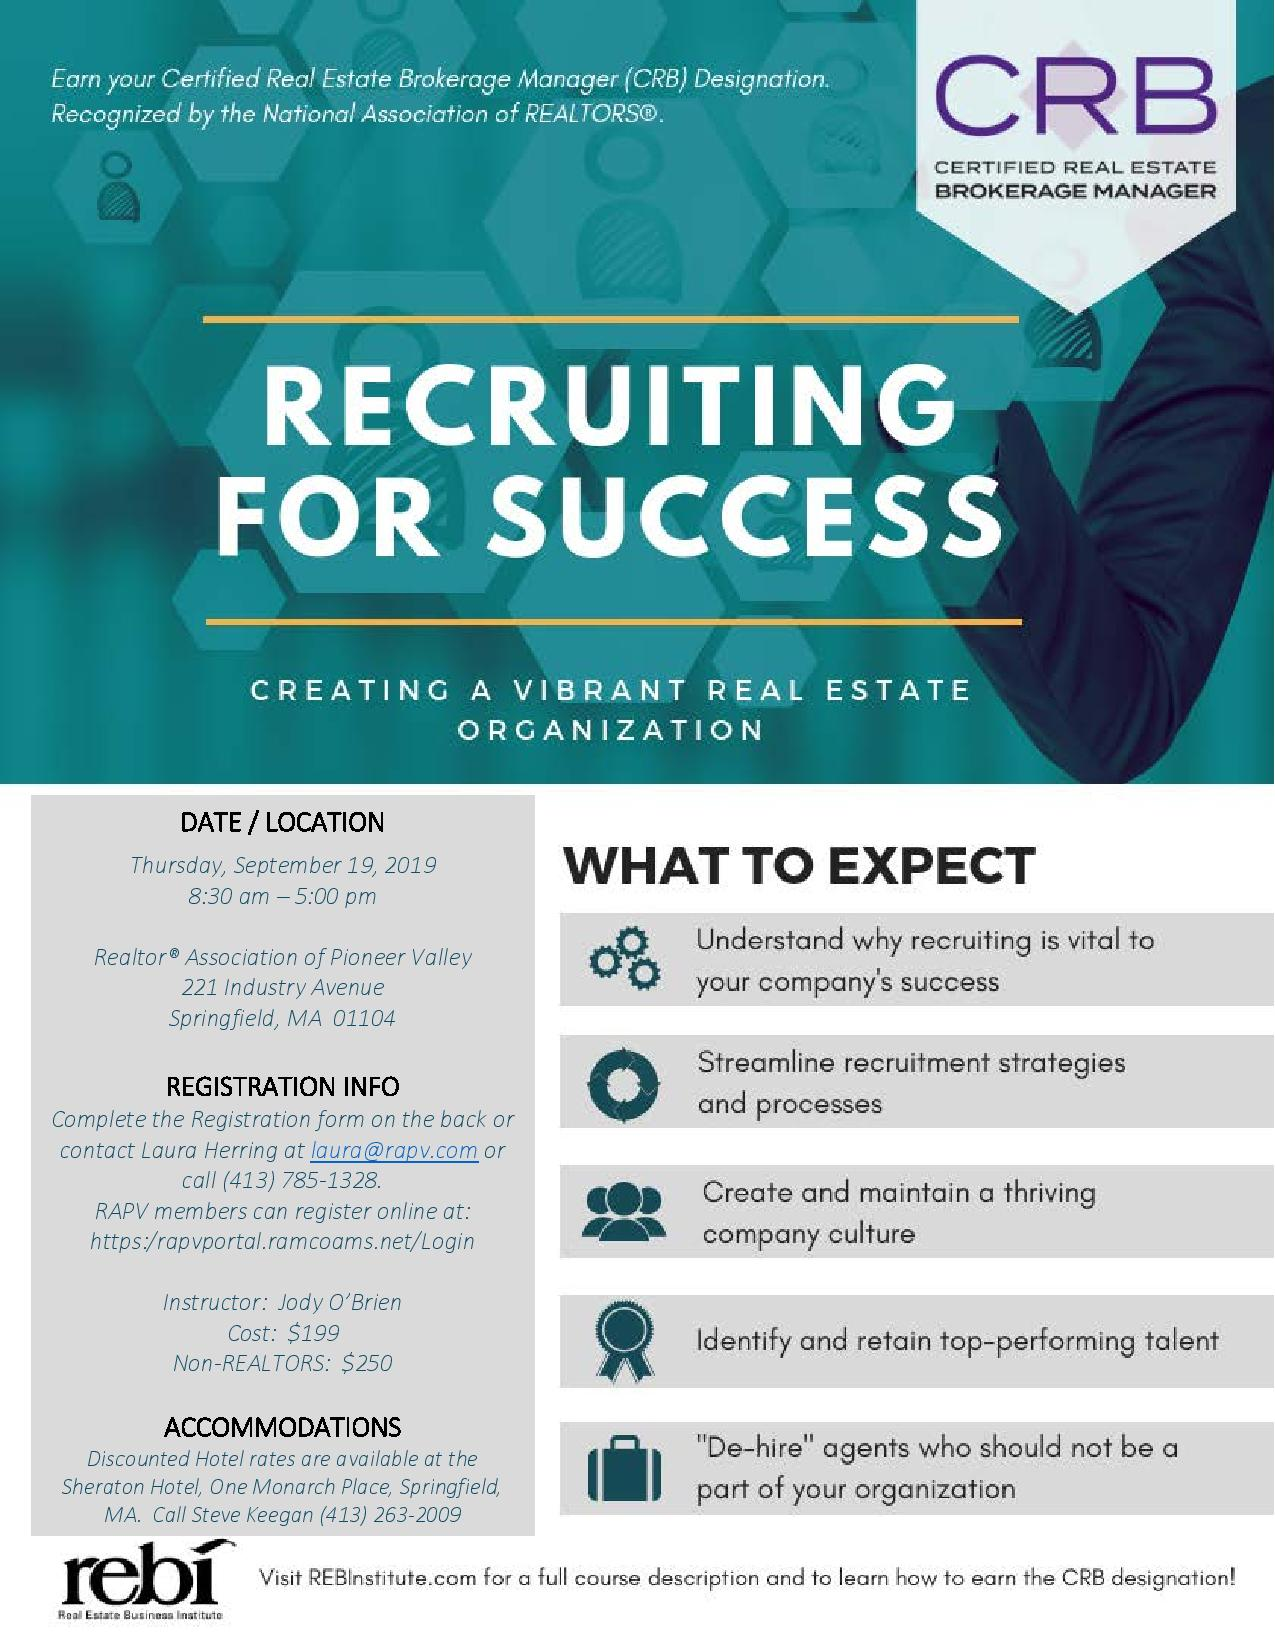 CRB Certification Course-Recruiting for Success   REALTOR